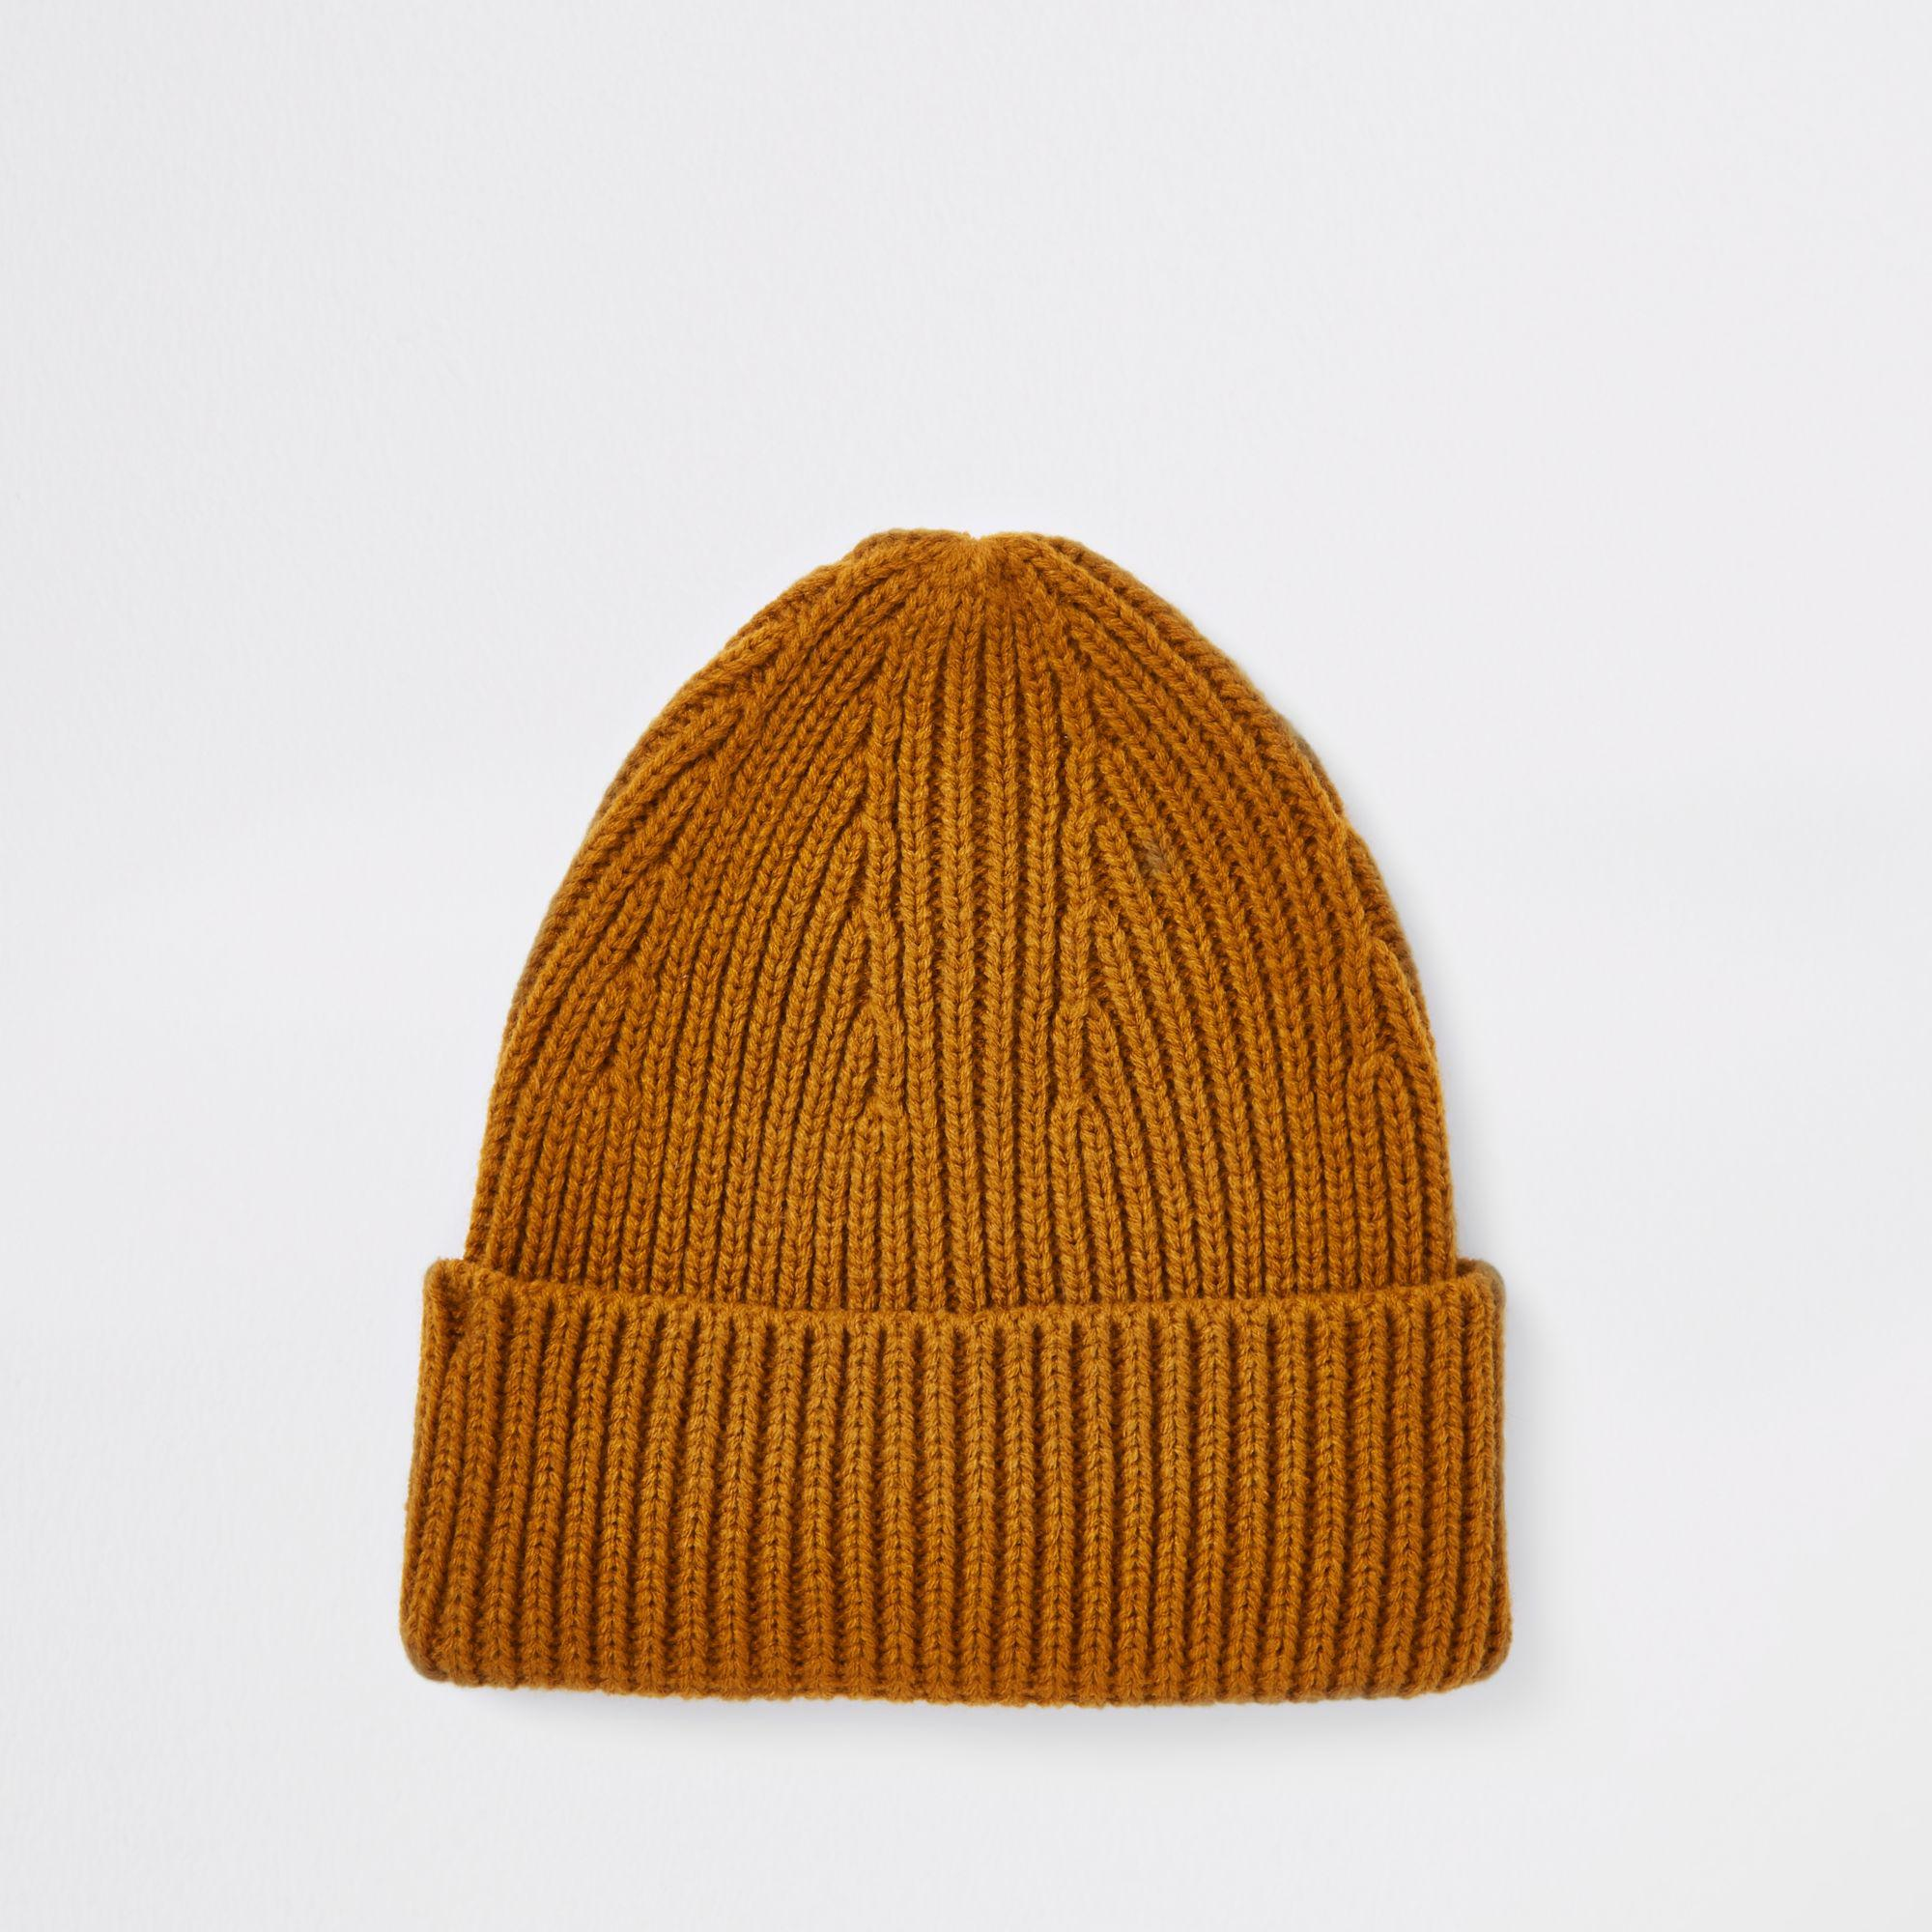 dab34a5ee62 River Island Fisherman Beanie Hat in Yellow for Men - Lyst